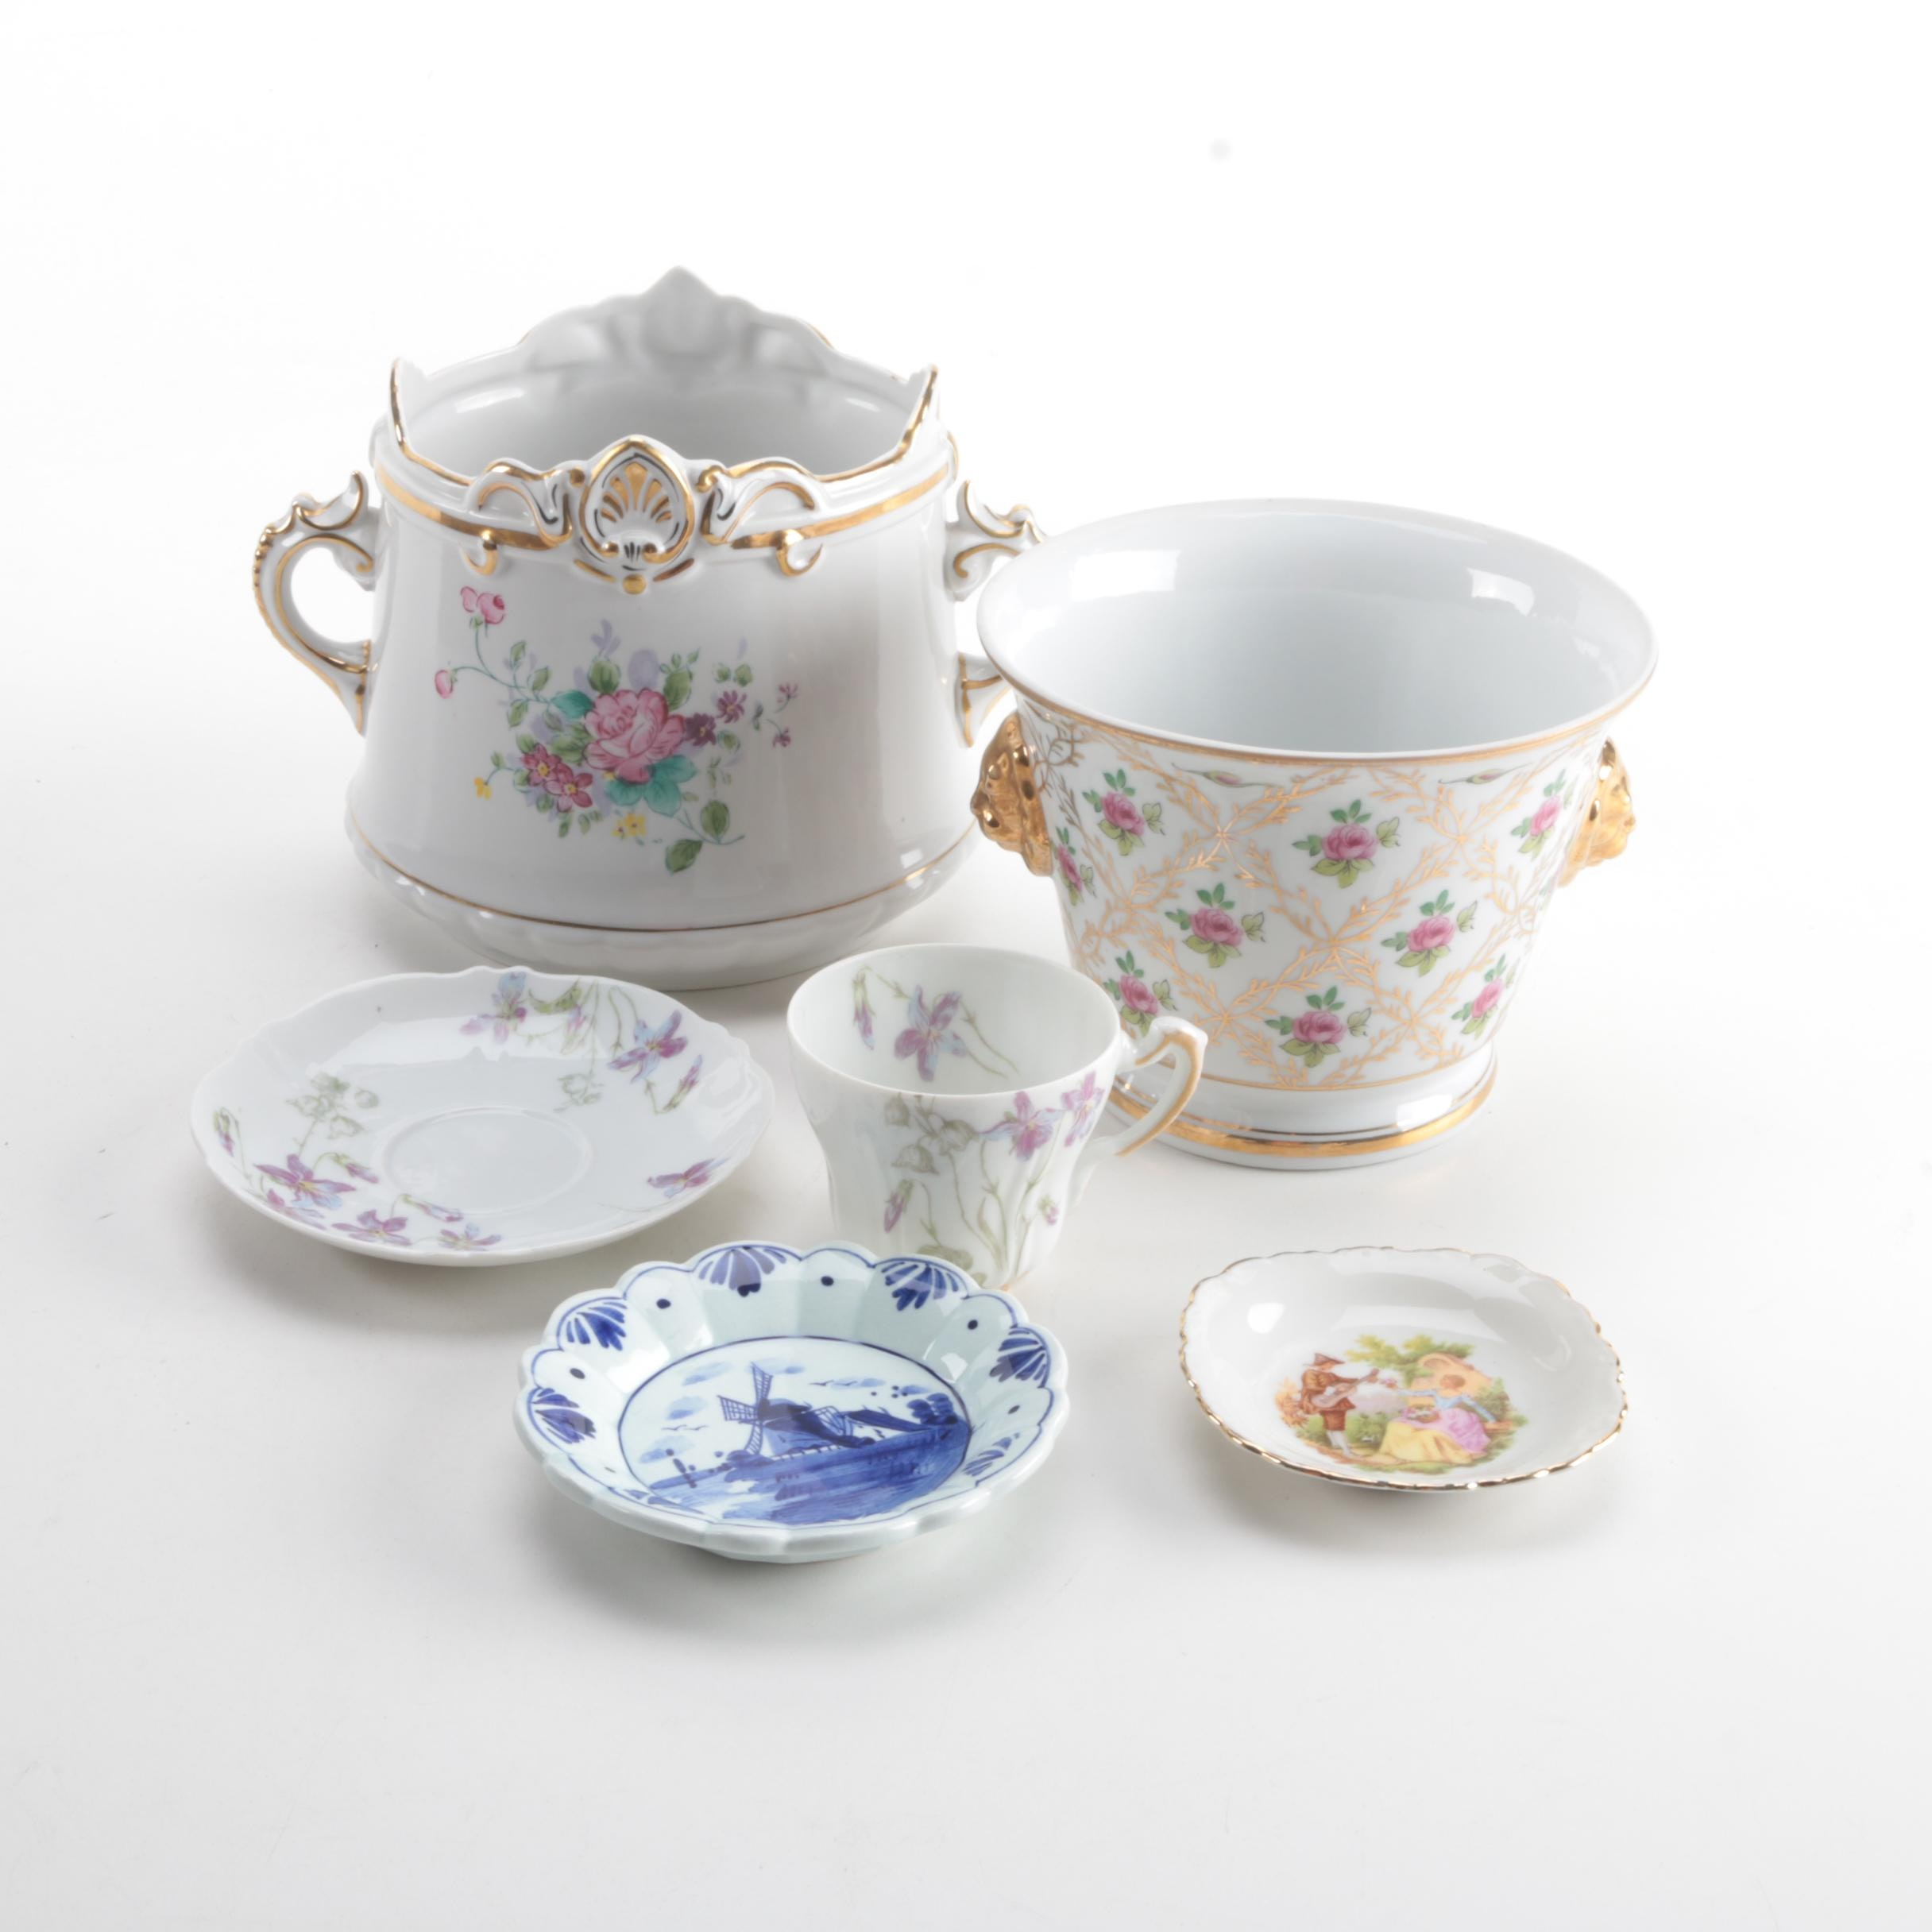 Floral Porcelain Tableware Featuring Theodore Haviland